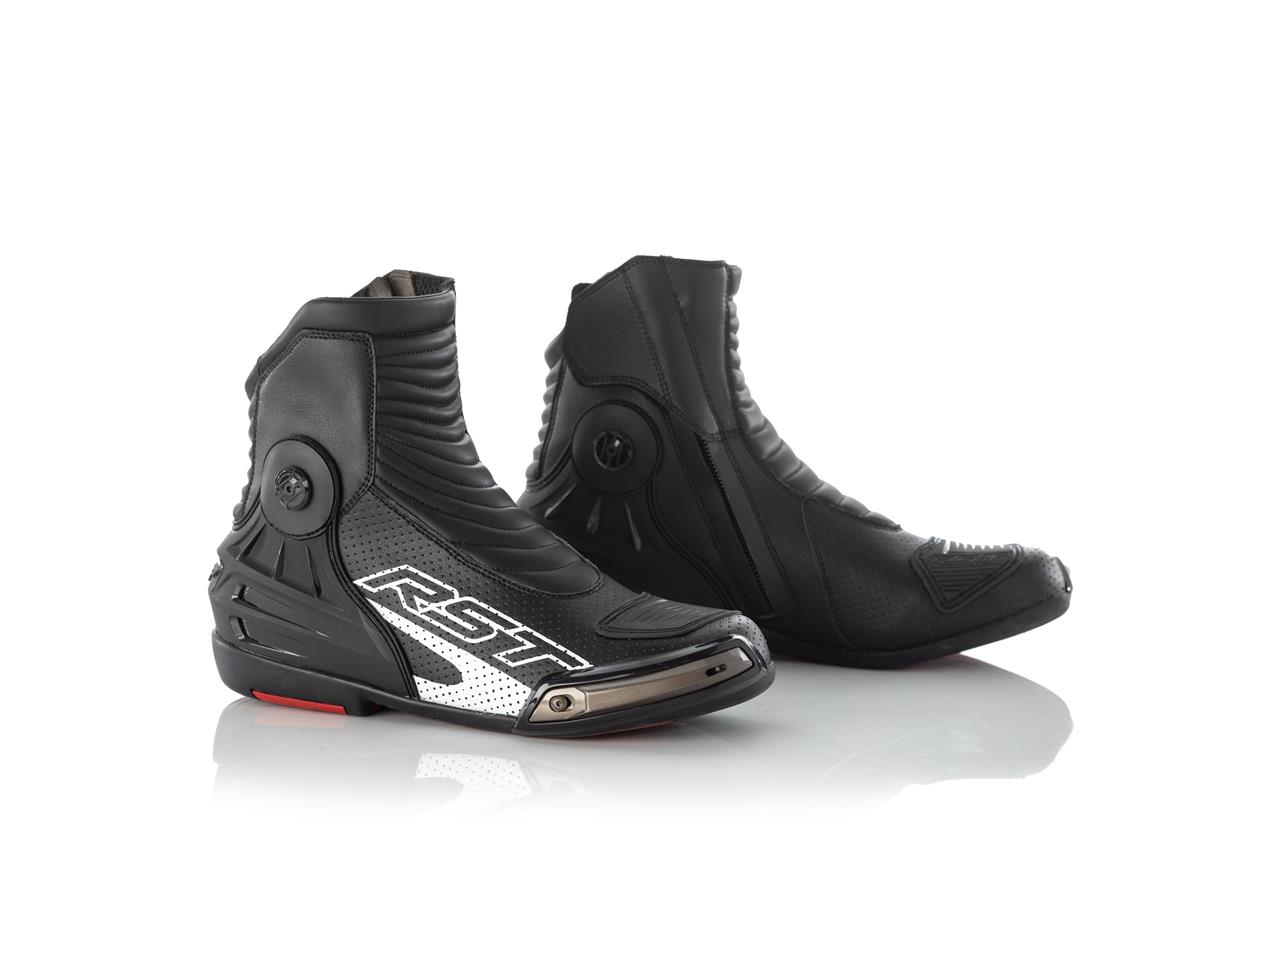 Bottes RST Tractech Evo III Short CE noir taille 44 homme